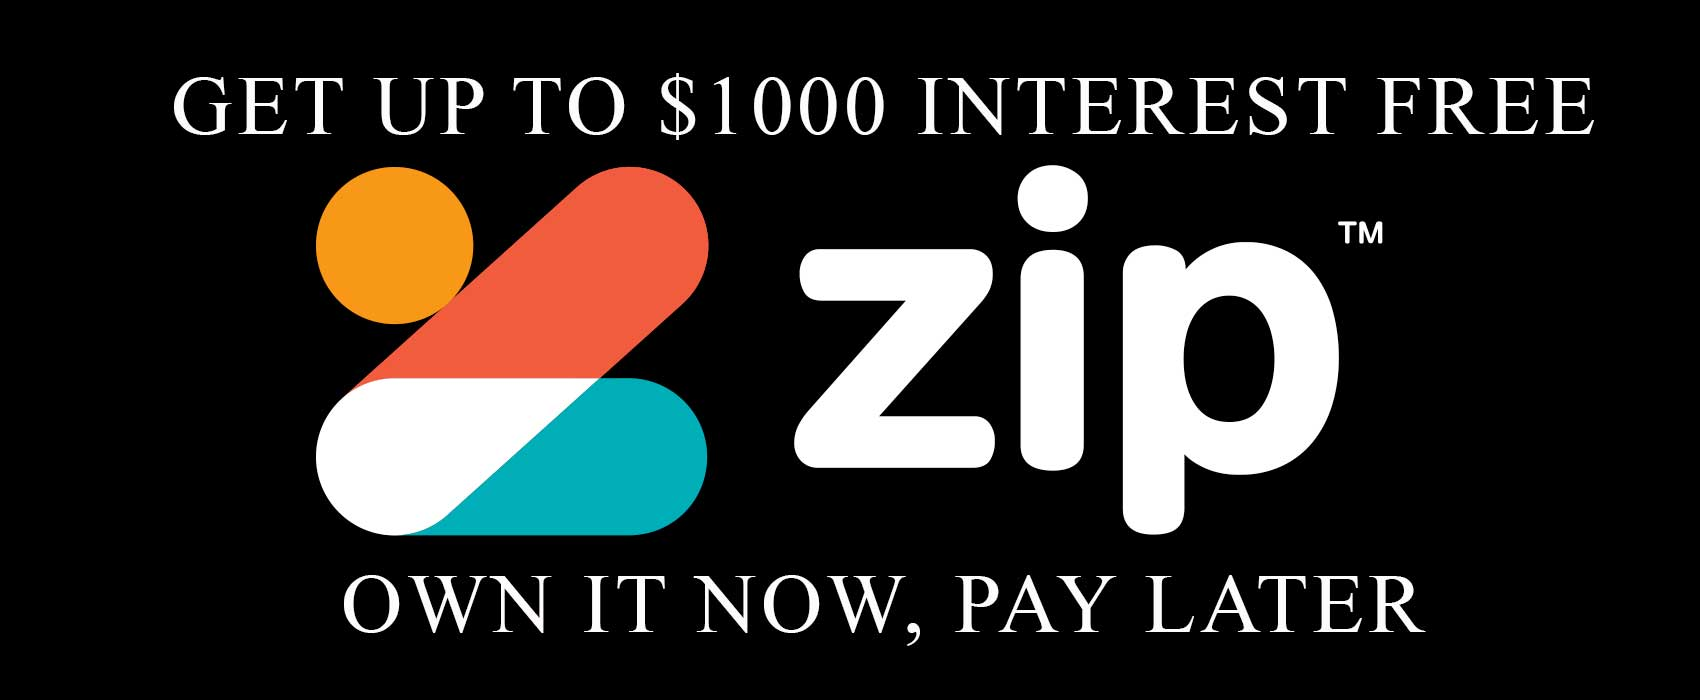 ZIP PA, buy now pay later